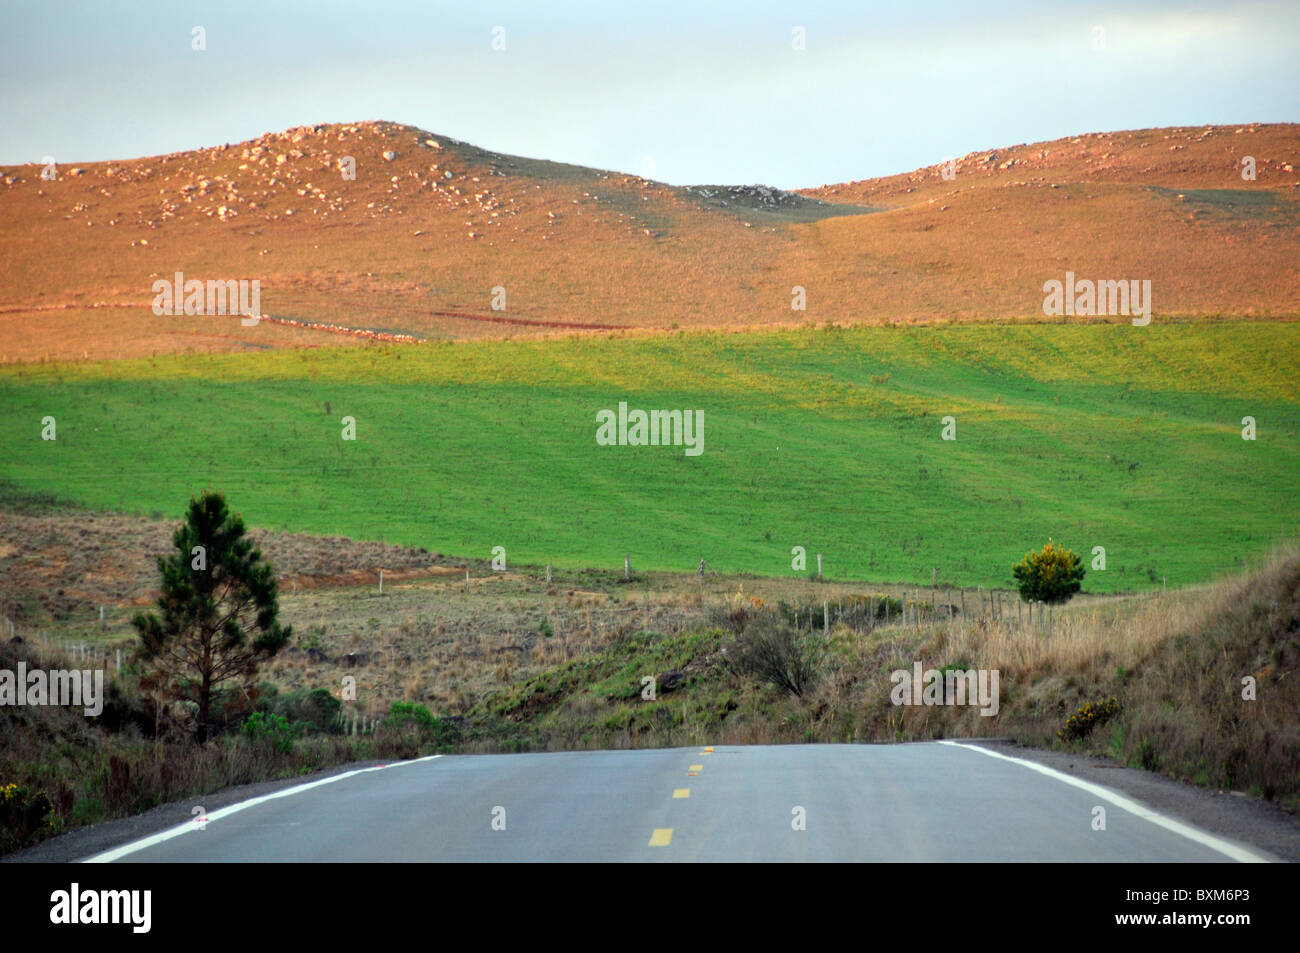 Road, pasture, and hills, in the Serras Gauchas area, Rio Grande do Sul, Brazil Stock Photo